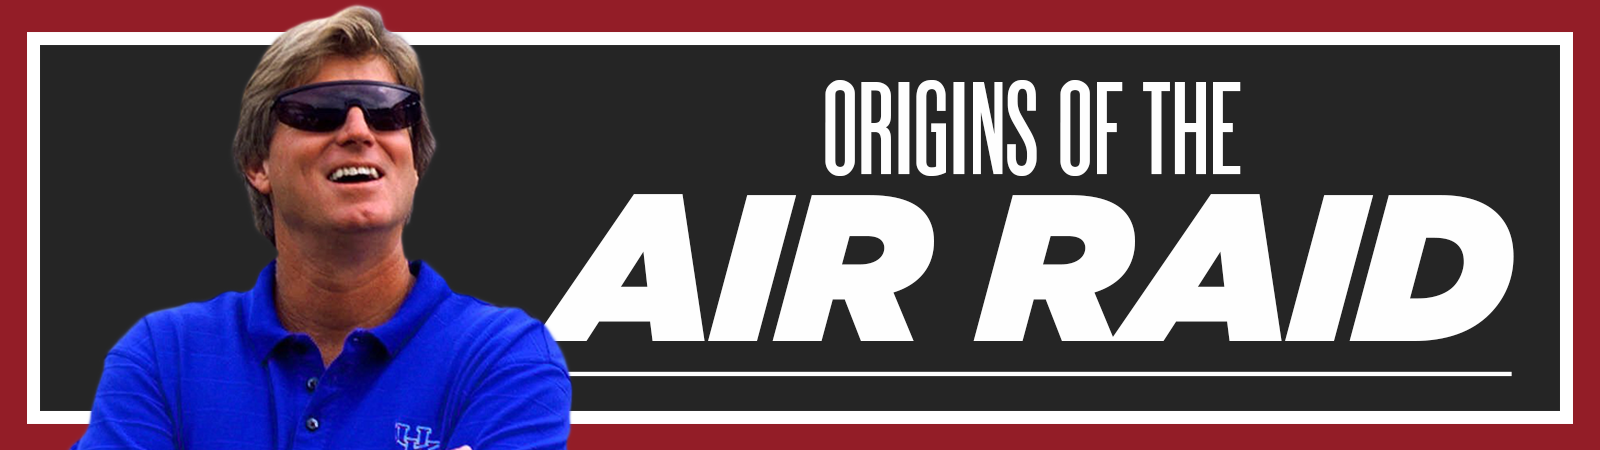 Air Raid offense origins